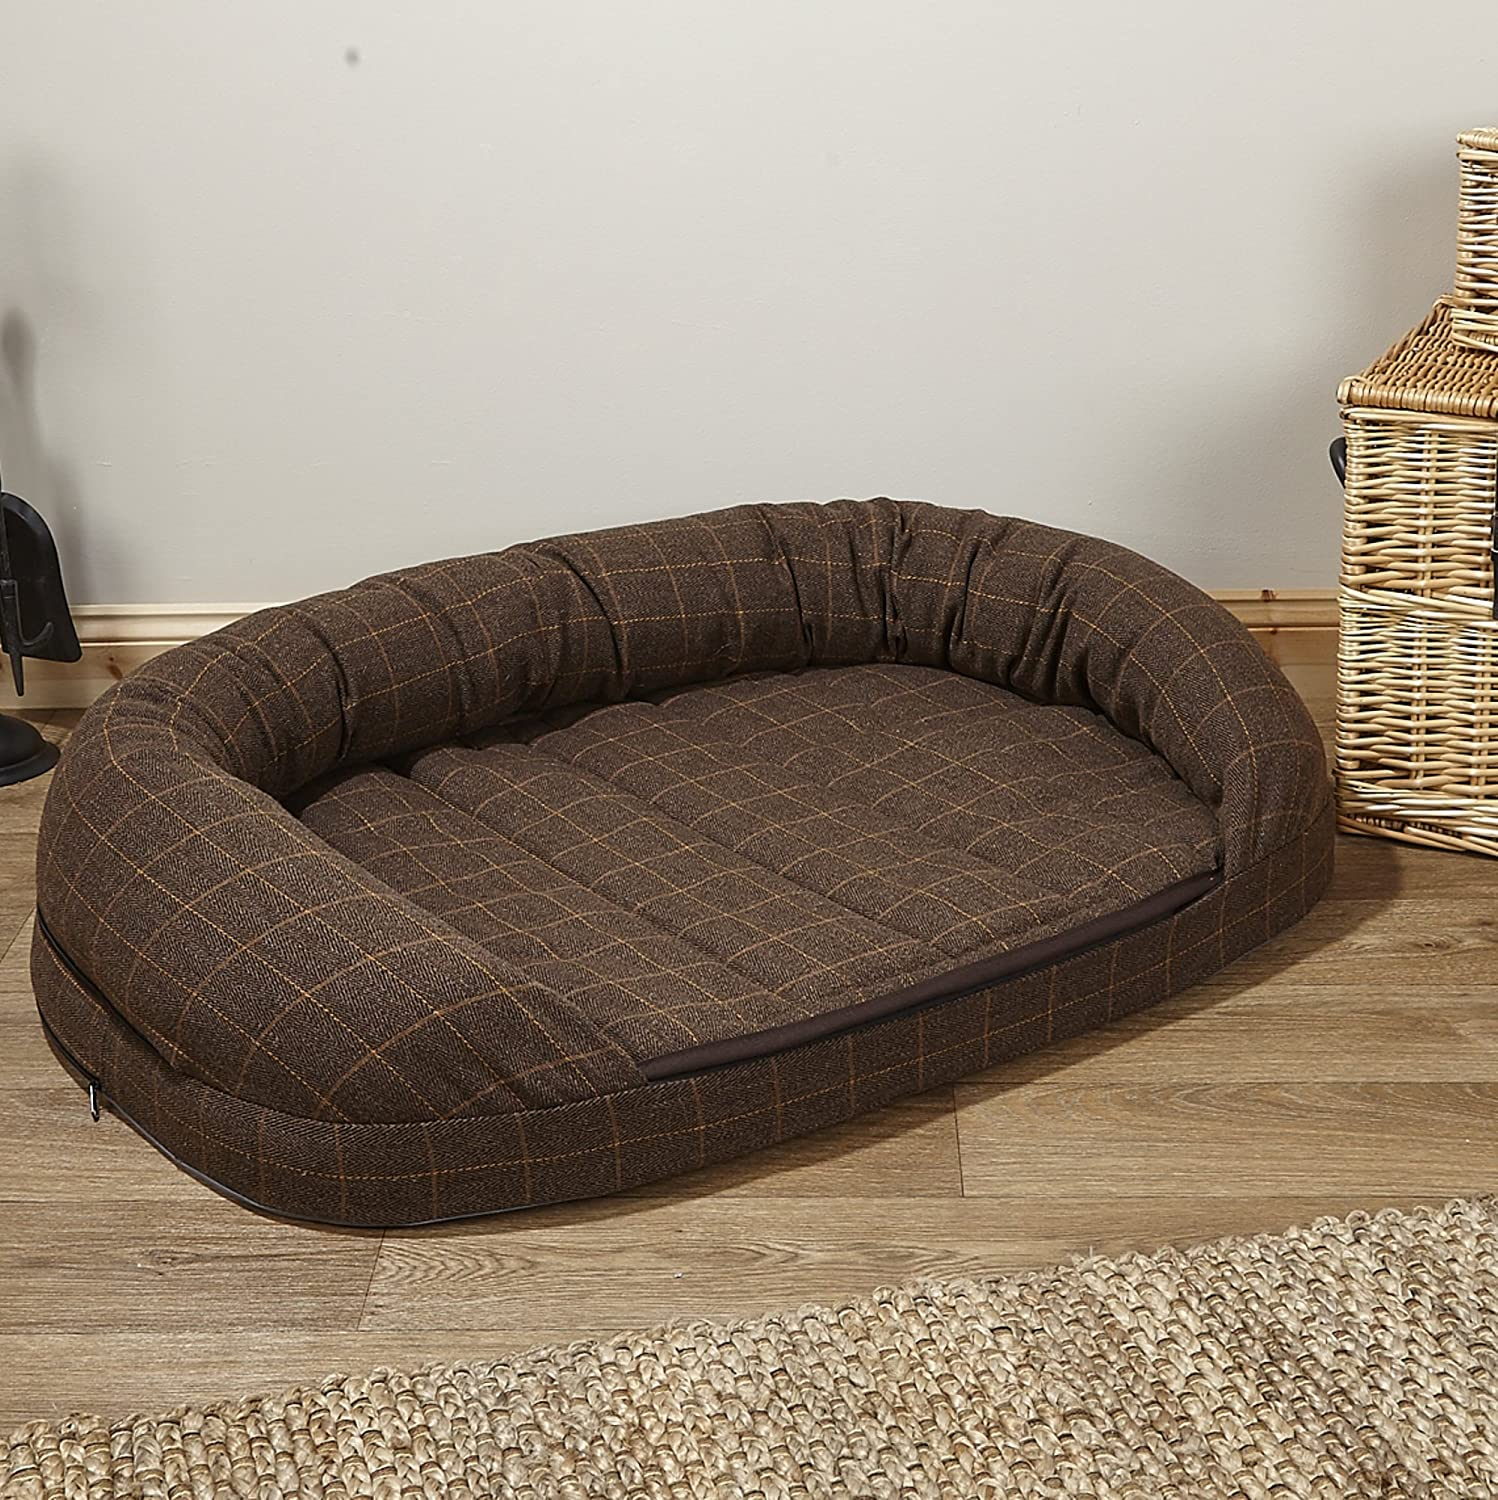 Over The Top Premier Tweed OTT Memory Foam Dog Bed, Brown Tweed, King Size